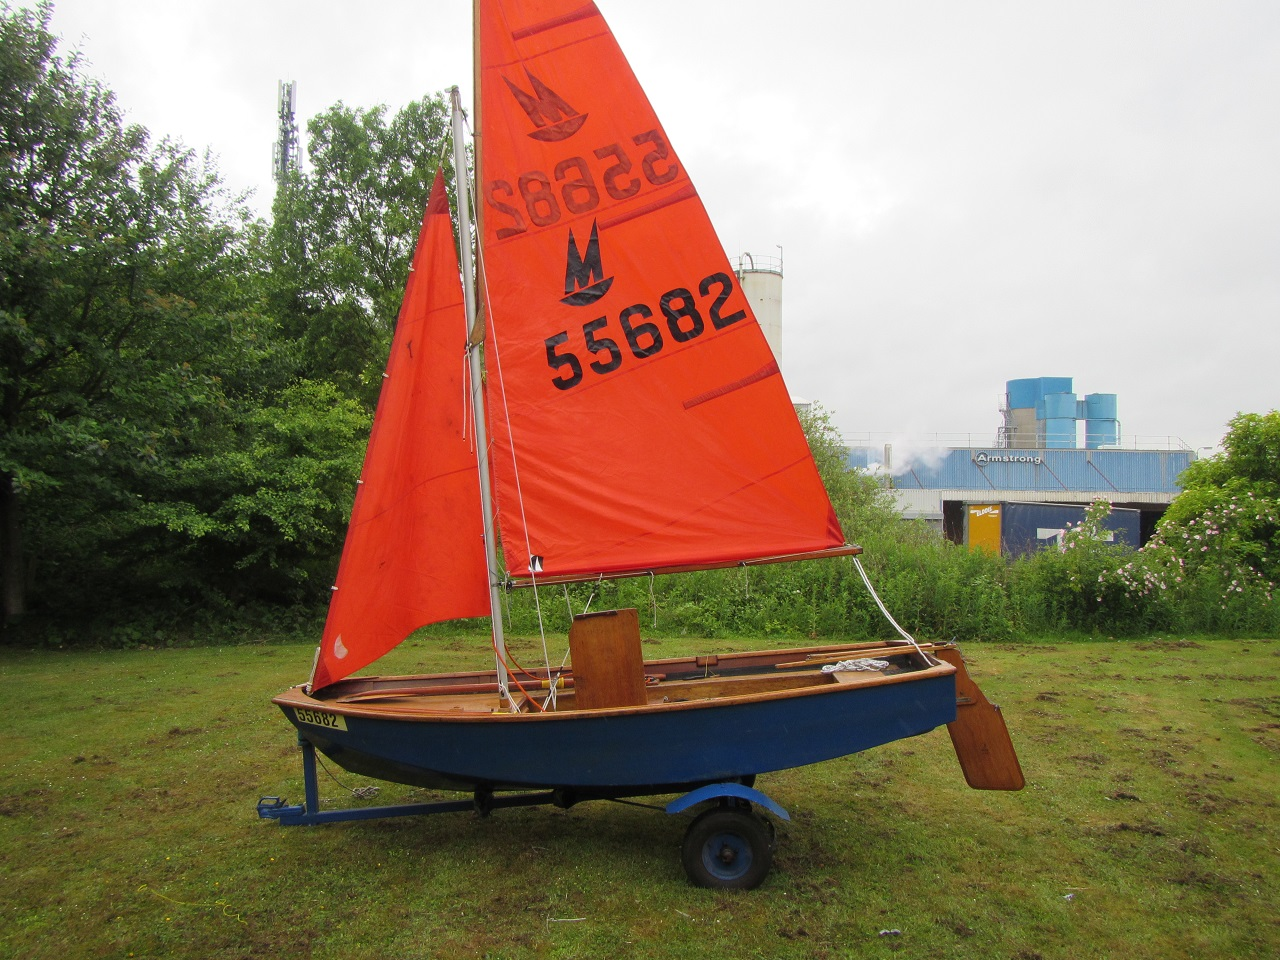 A Mirror dinghy rigged in a field